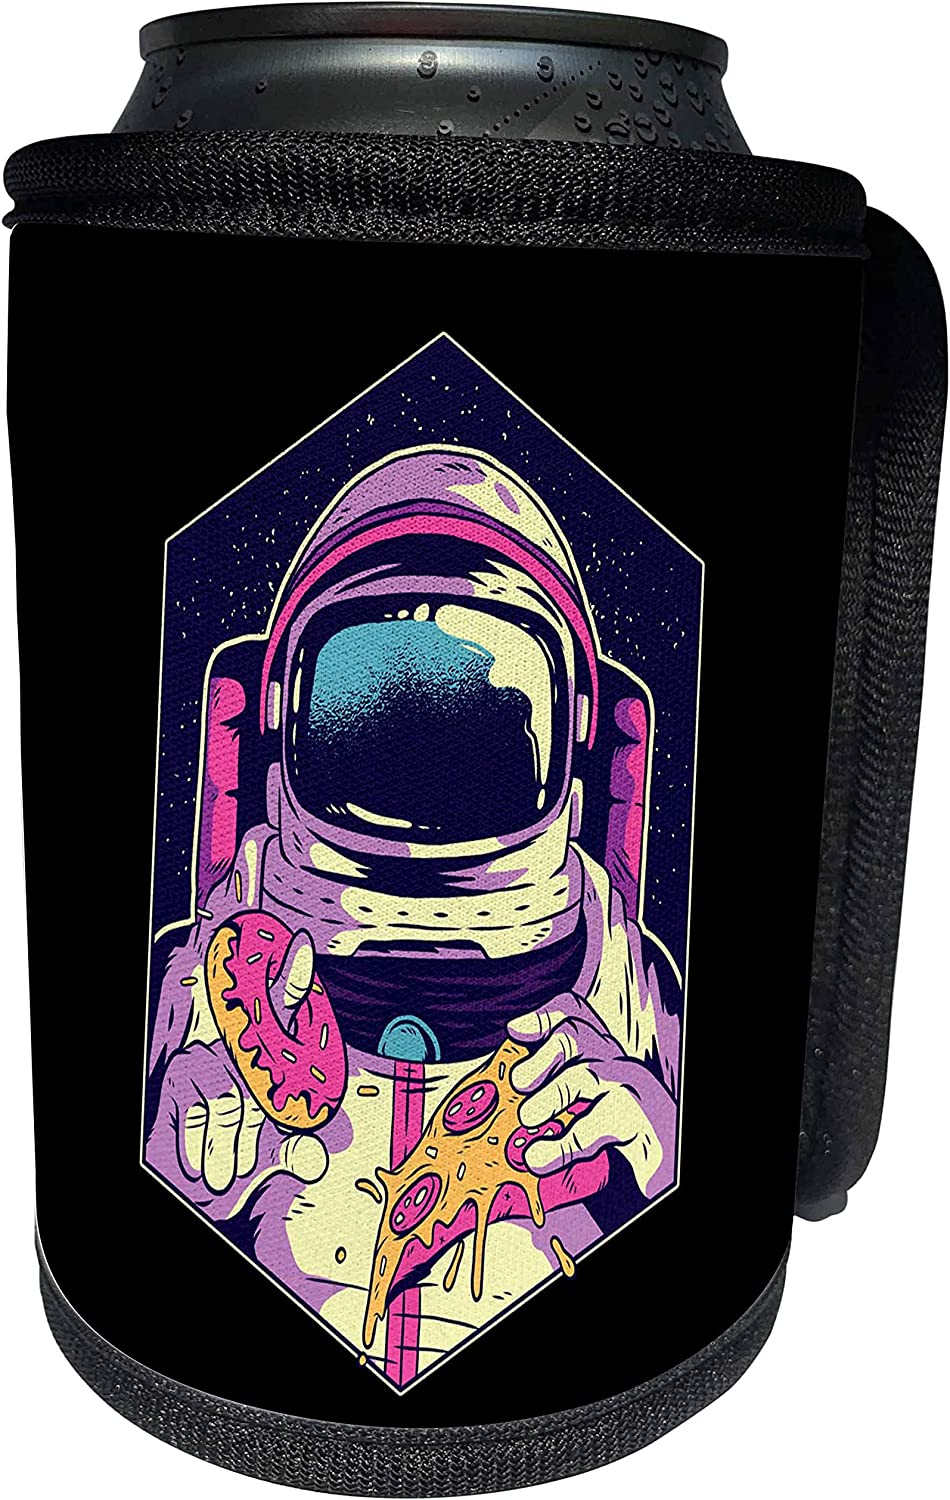 3dRose Sven Herkenrath Fantasy - Illustration Design with Astronaut and Pizza Food Sweet - Can Cooler Bottle Wrap (cc_306912_1)